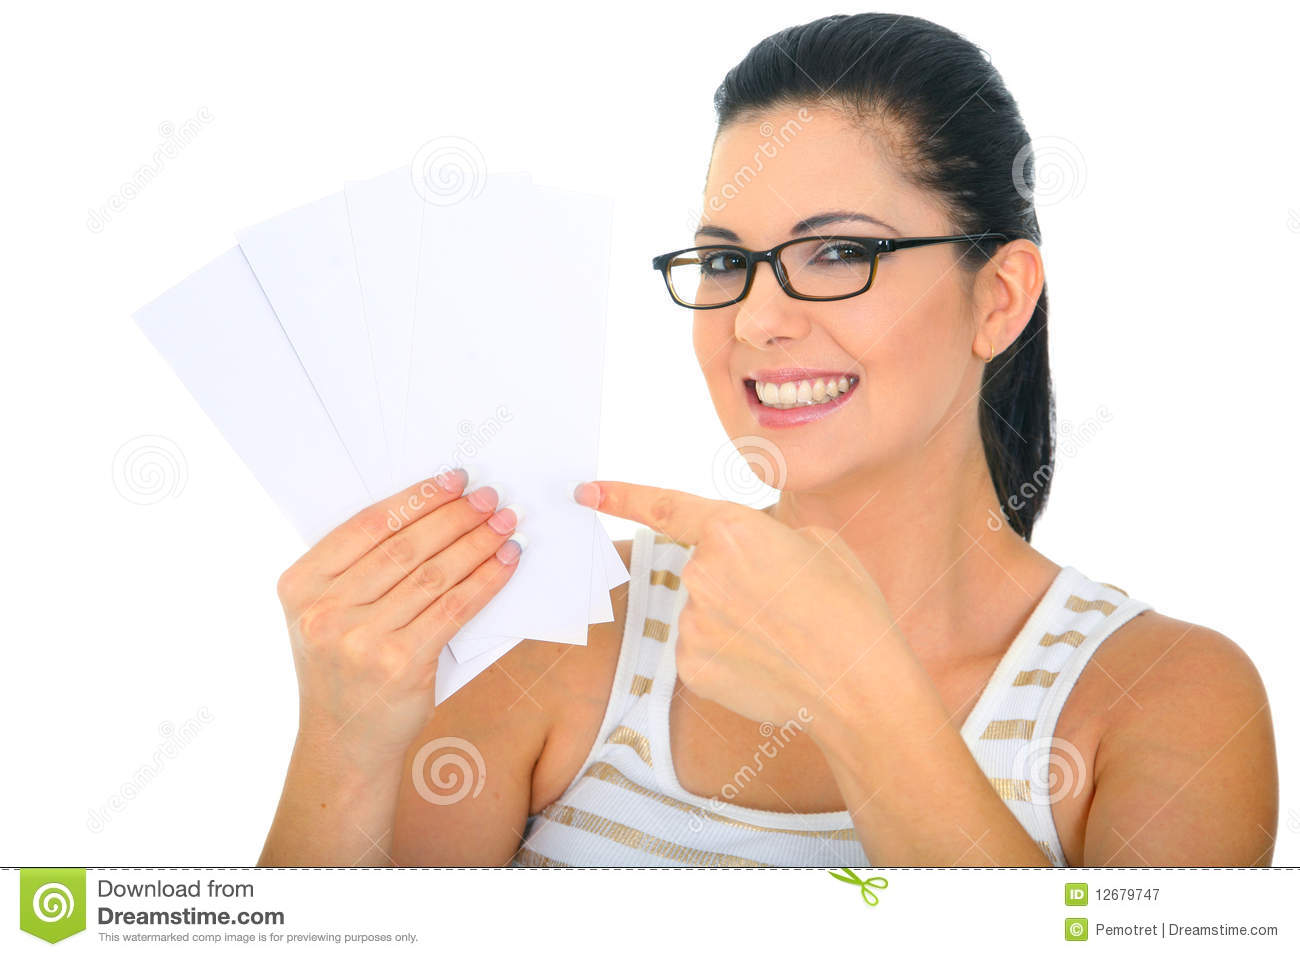 Smiling Mom Pointing To Blank Cards